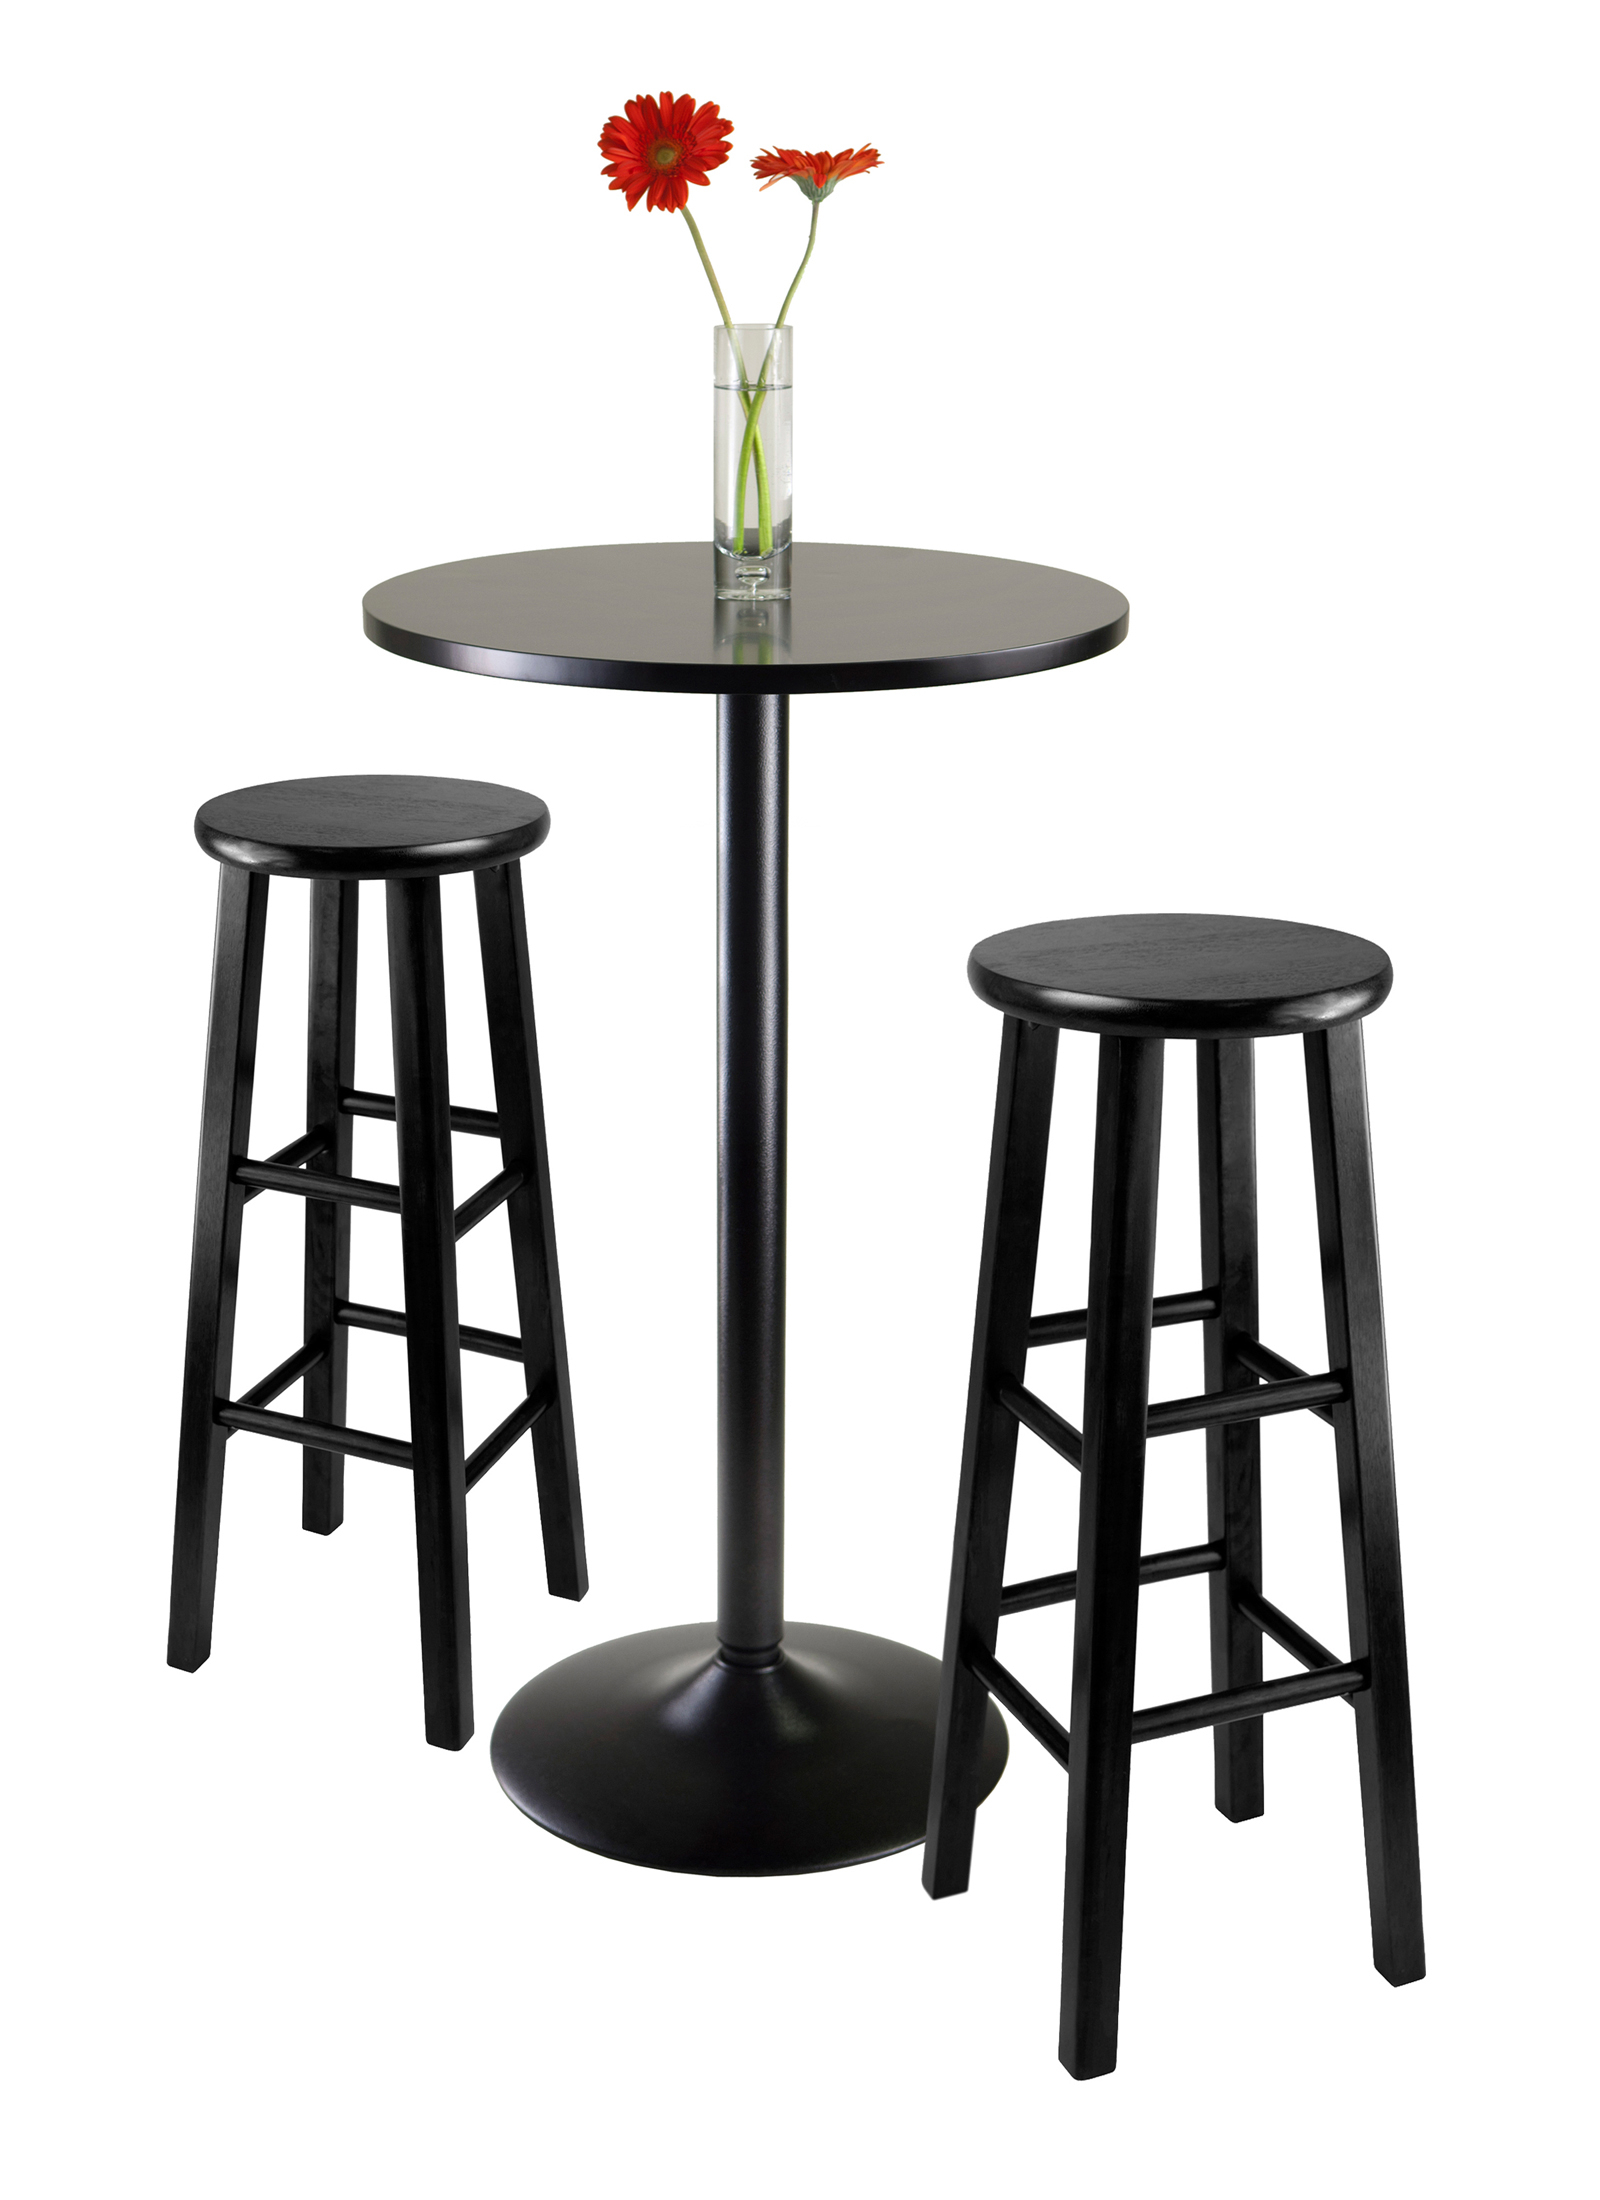 Winsome Wood Obsidian 3 Piece Round Black Pub Table Set Throughout Fashionable Winsome 3 Piece Counter Height Dining Sets (View 19 of 20)